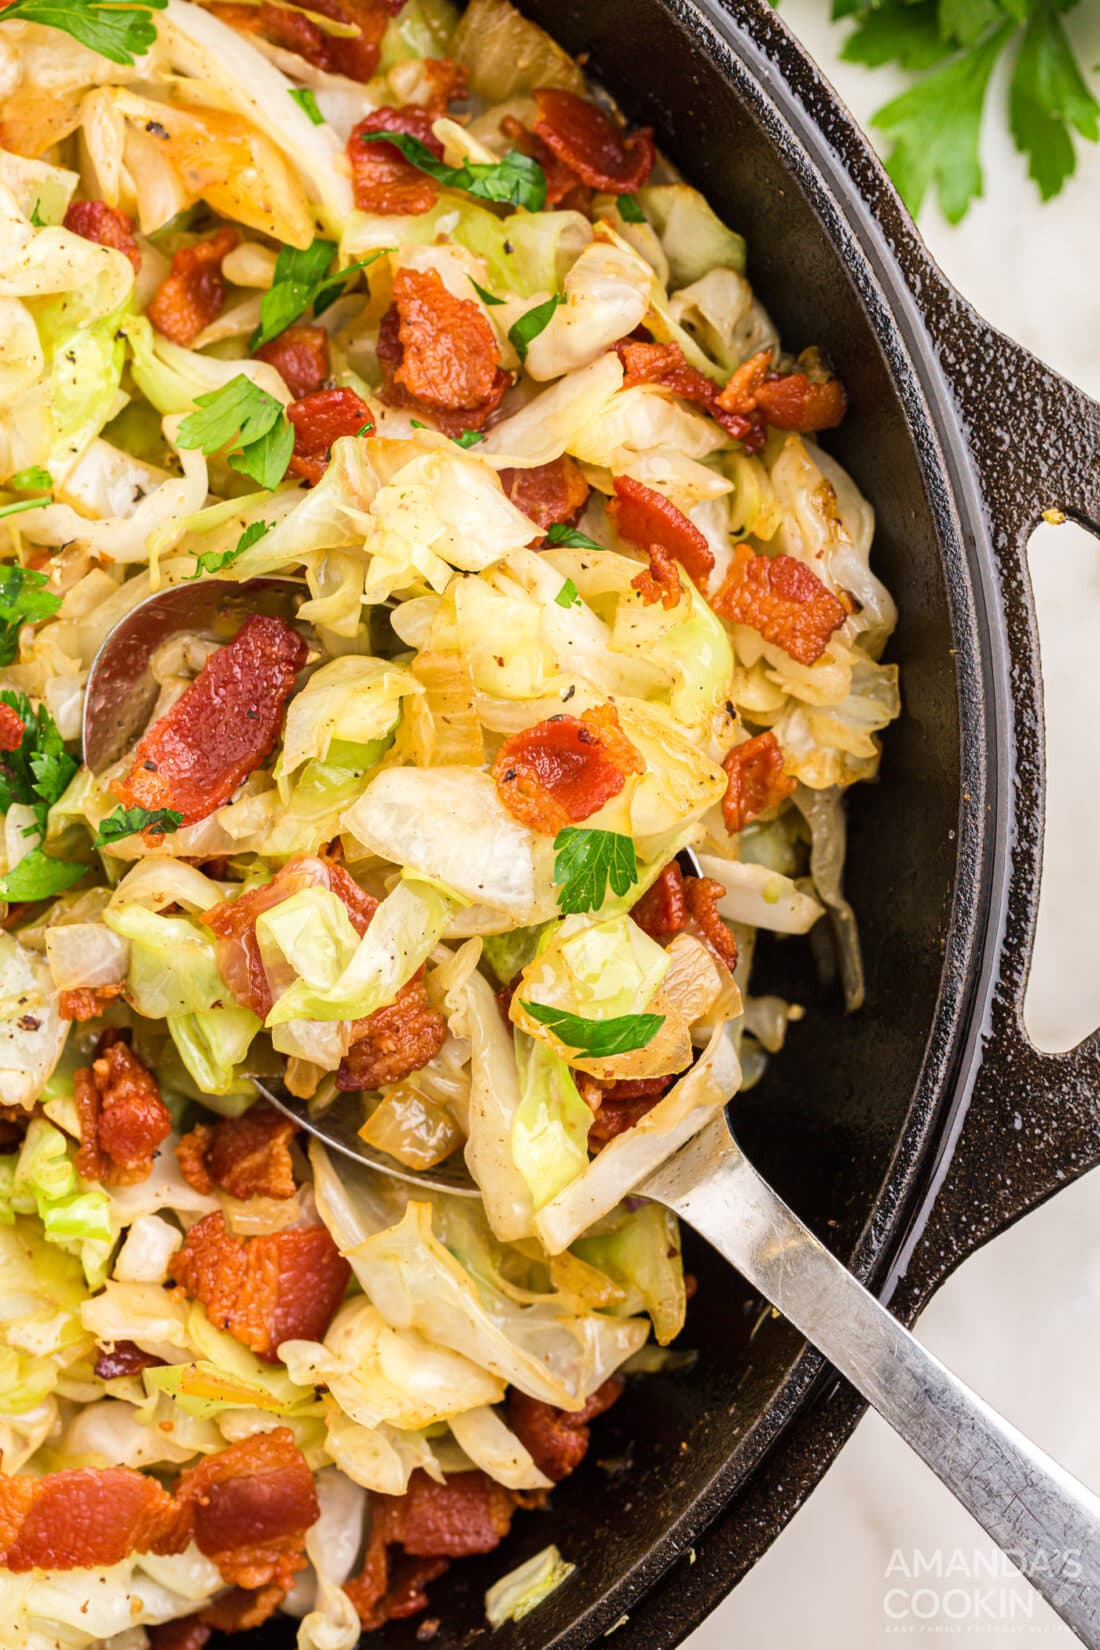 Fried Cabbage in pan with serving spoon